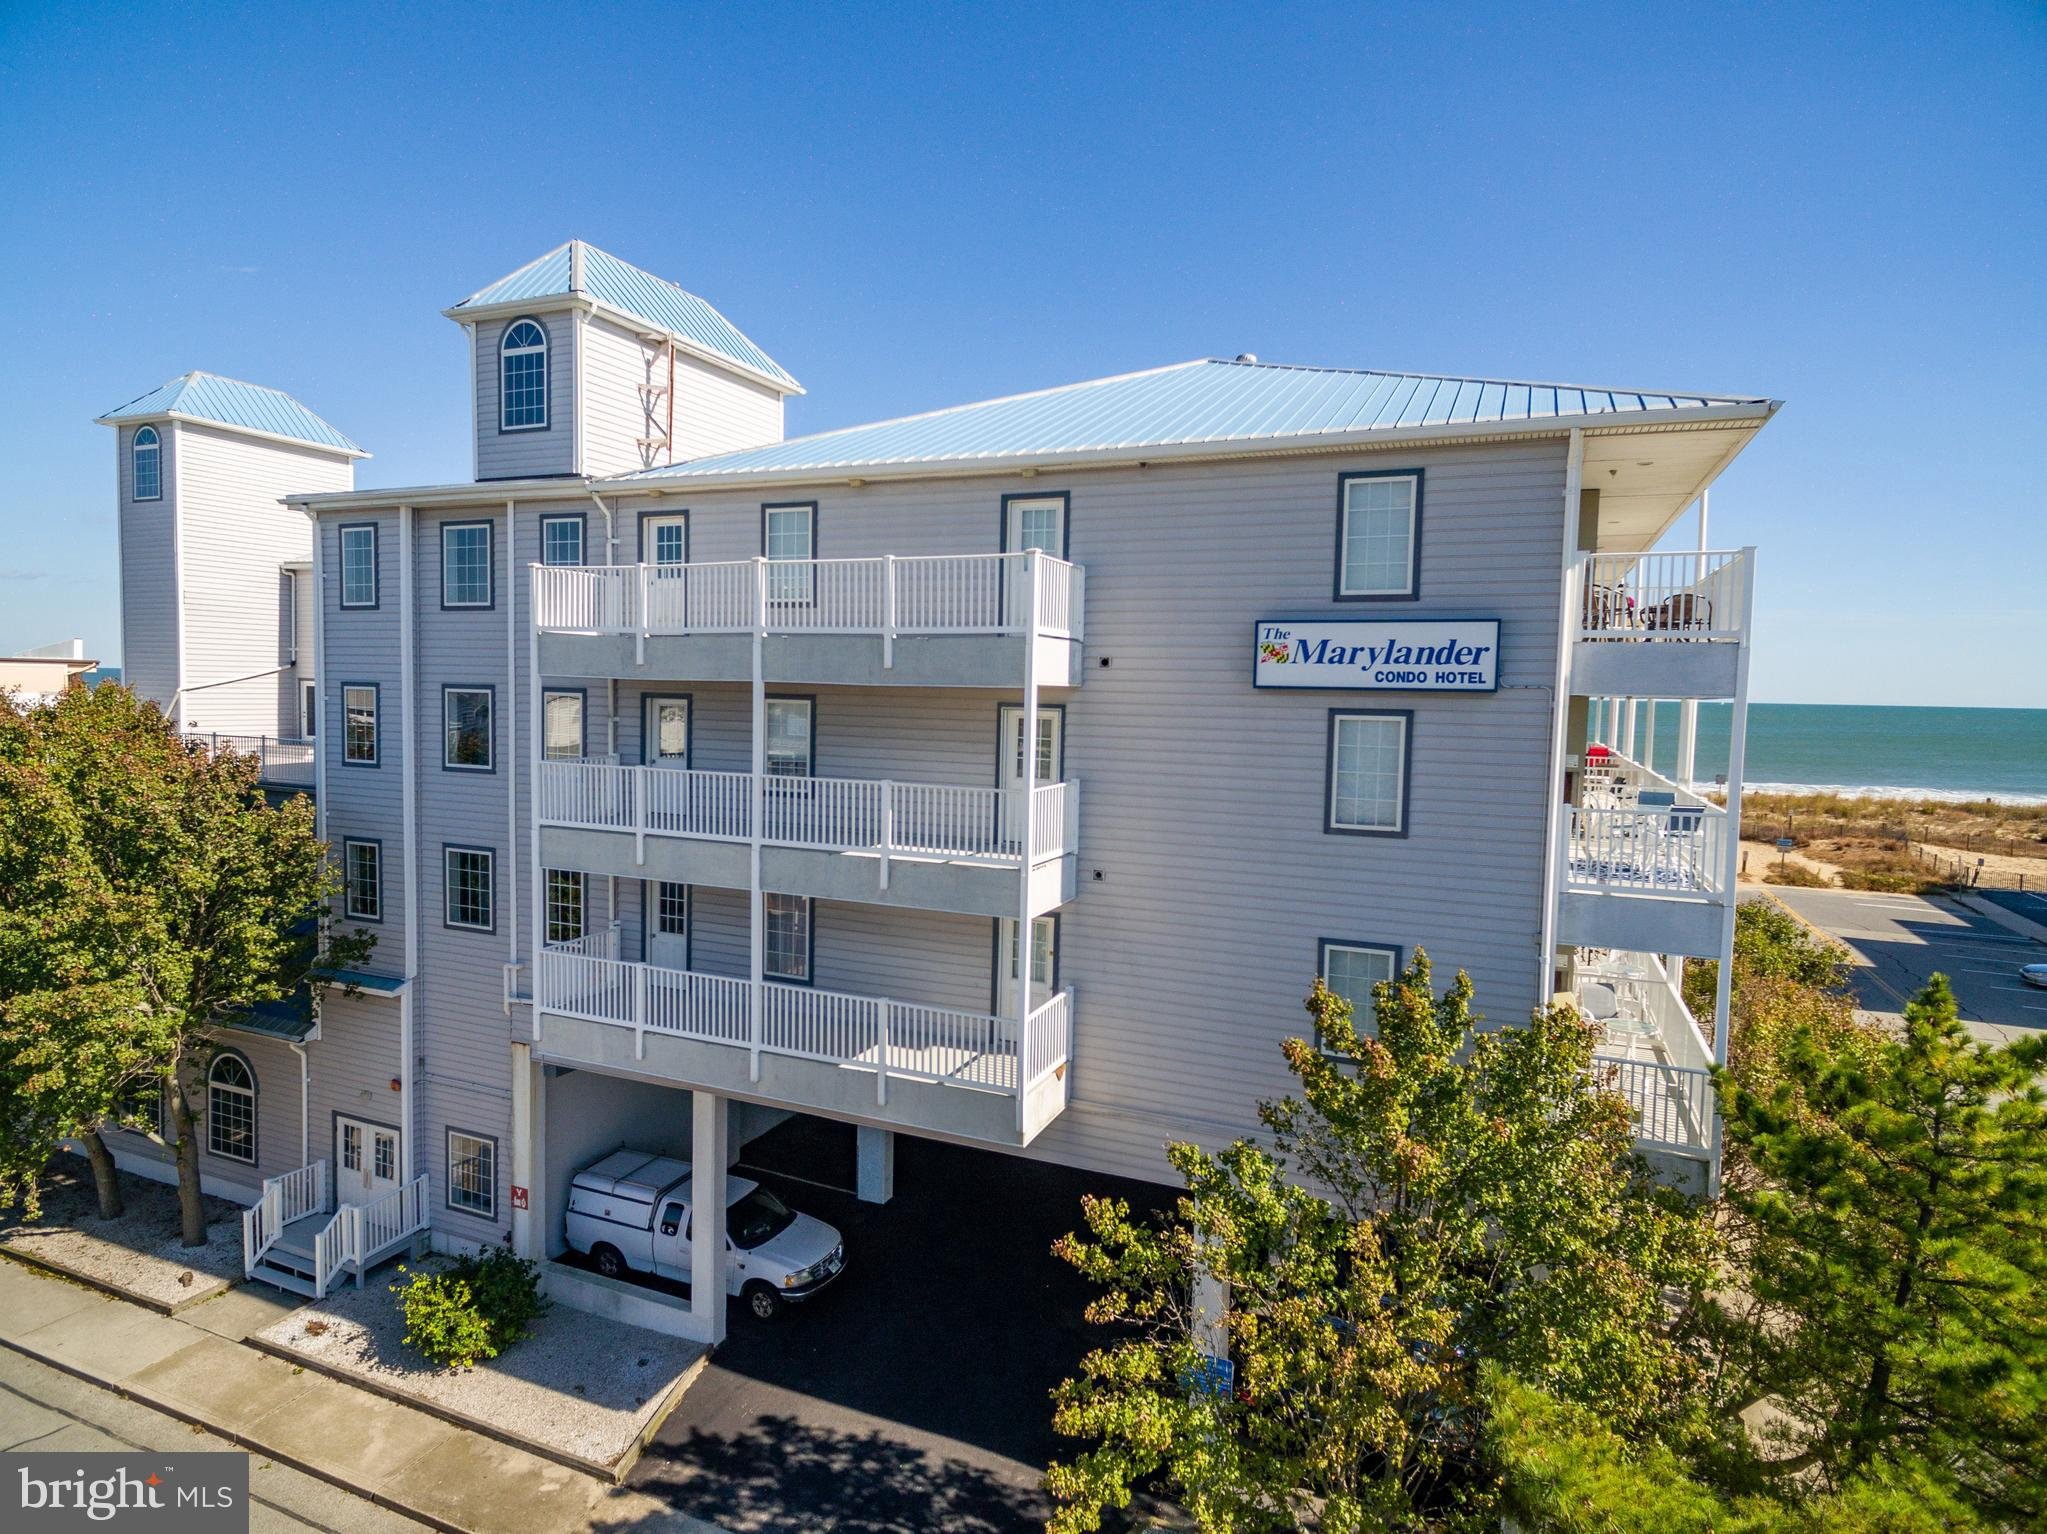 Welcome to the Marylander #307 in Ocean City, MD! This cozy one bedroom Oceanblock Condo is well pri